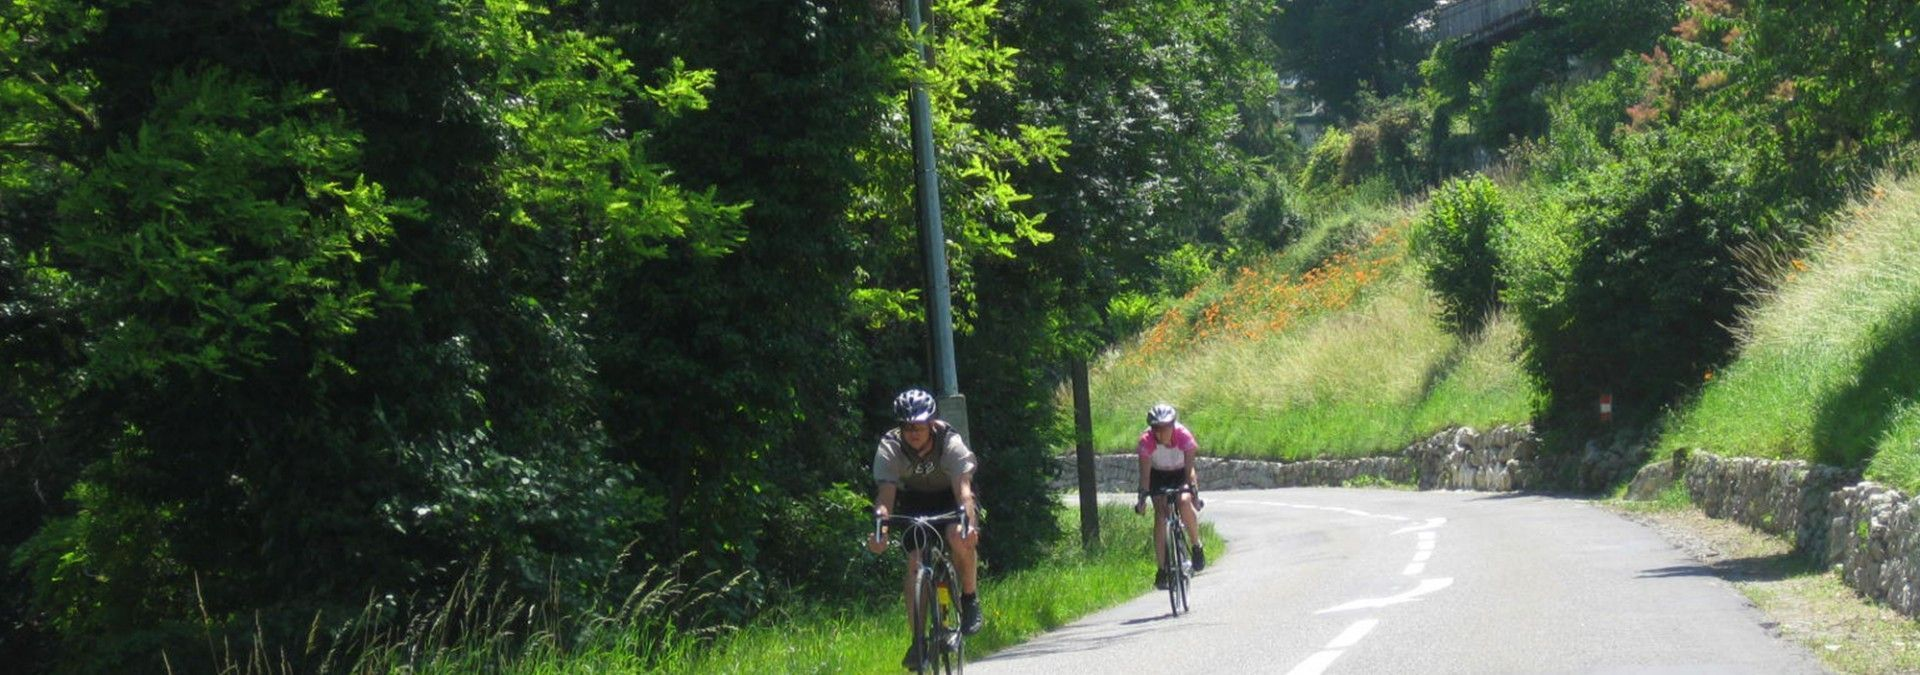 Road_cycling_from_Geneva_to_Nice.jpg